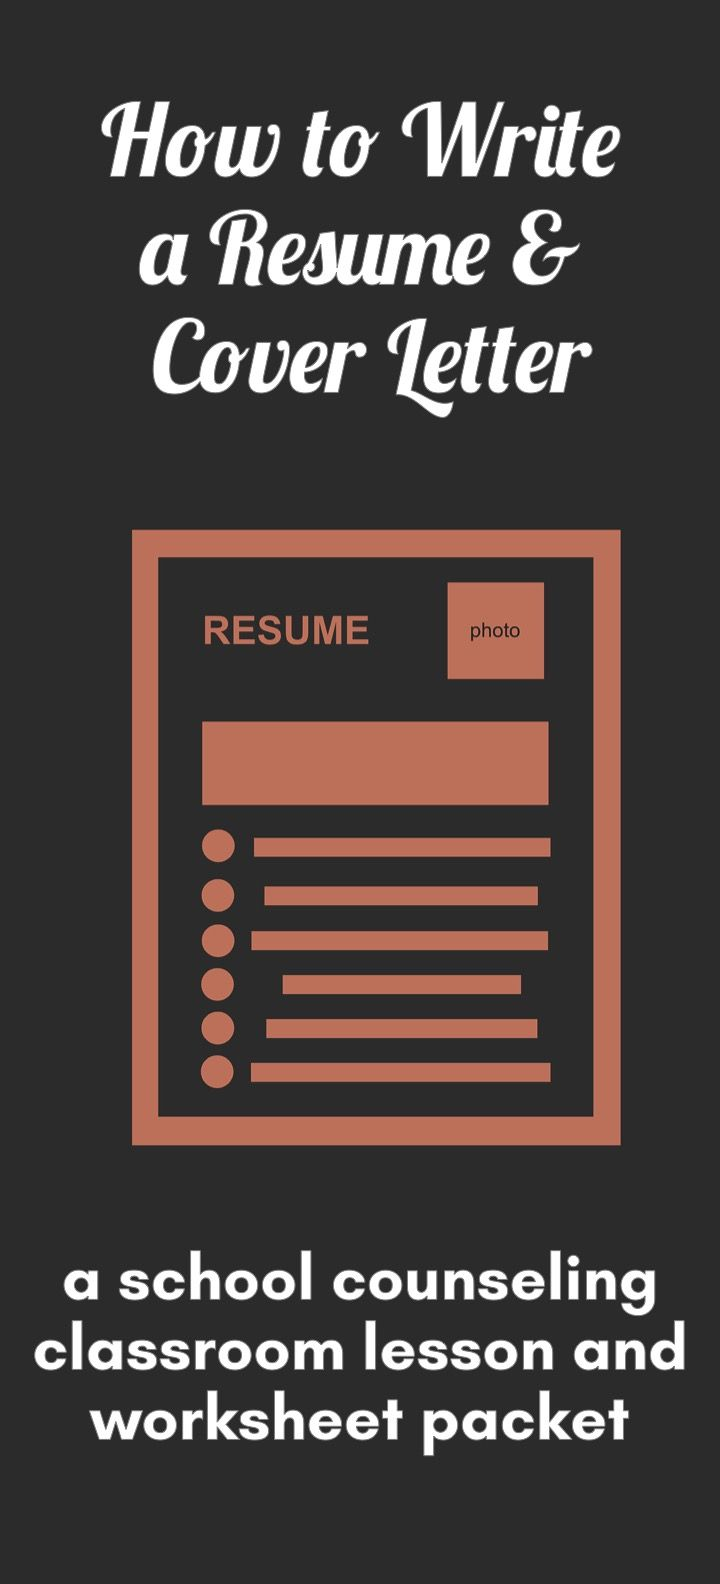 Resume writing workshop for high school students